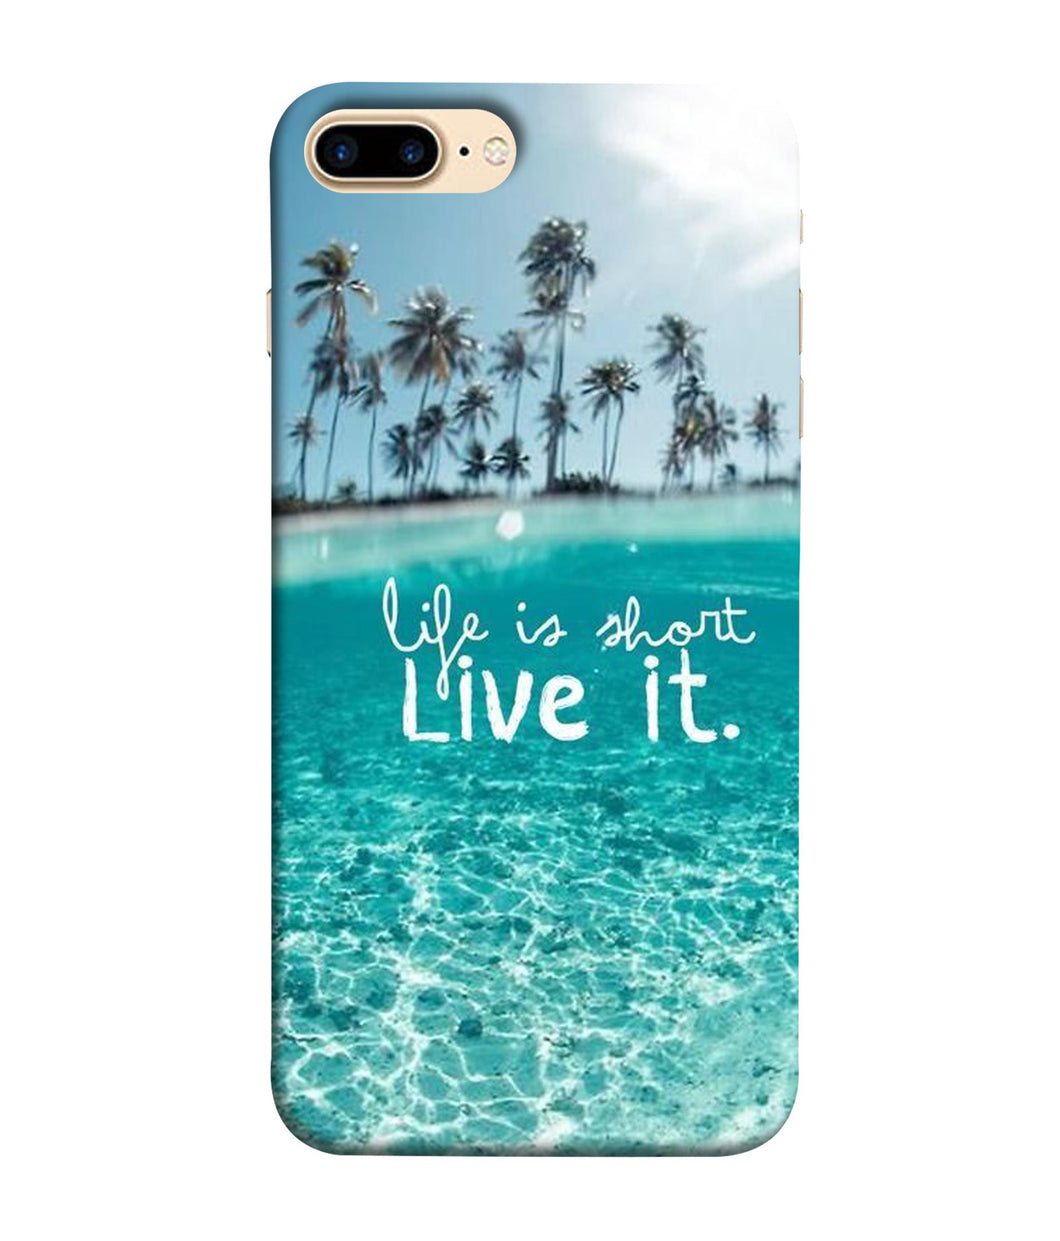 Apple Iphone 7 Plus Live Life mobile cover